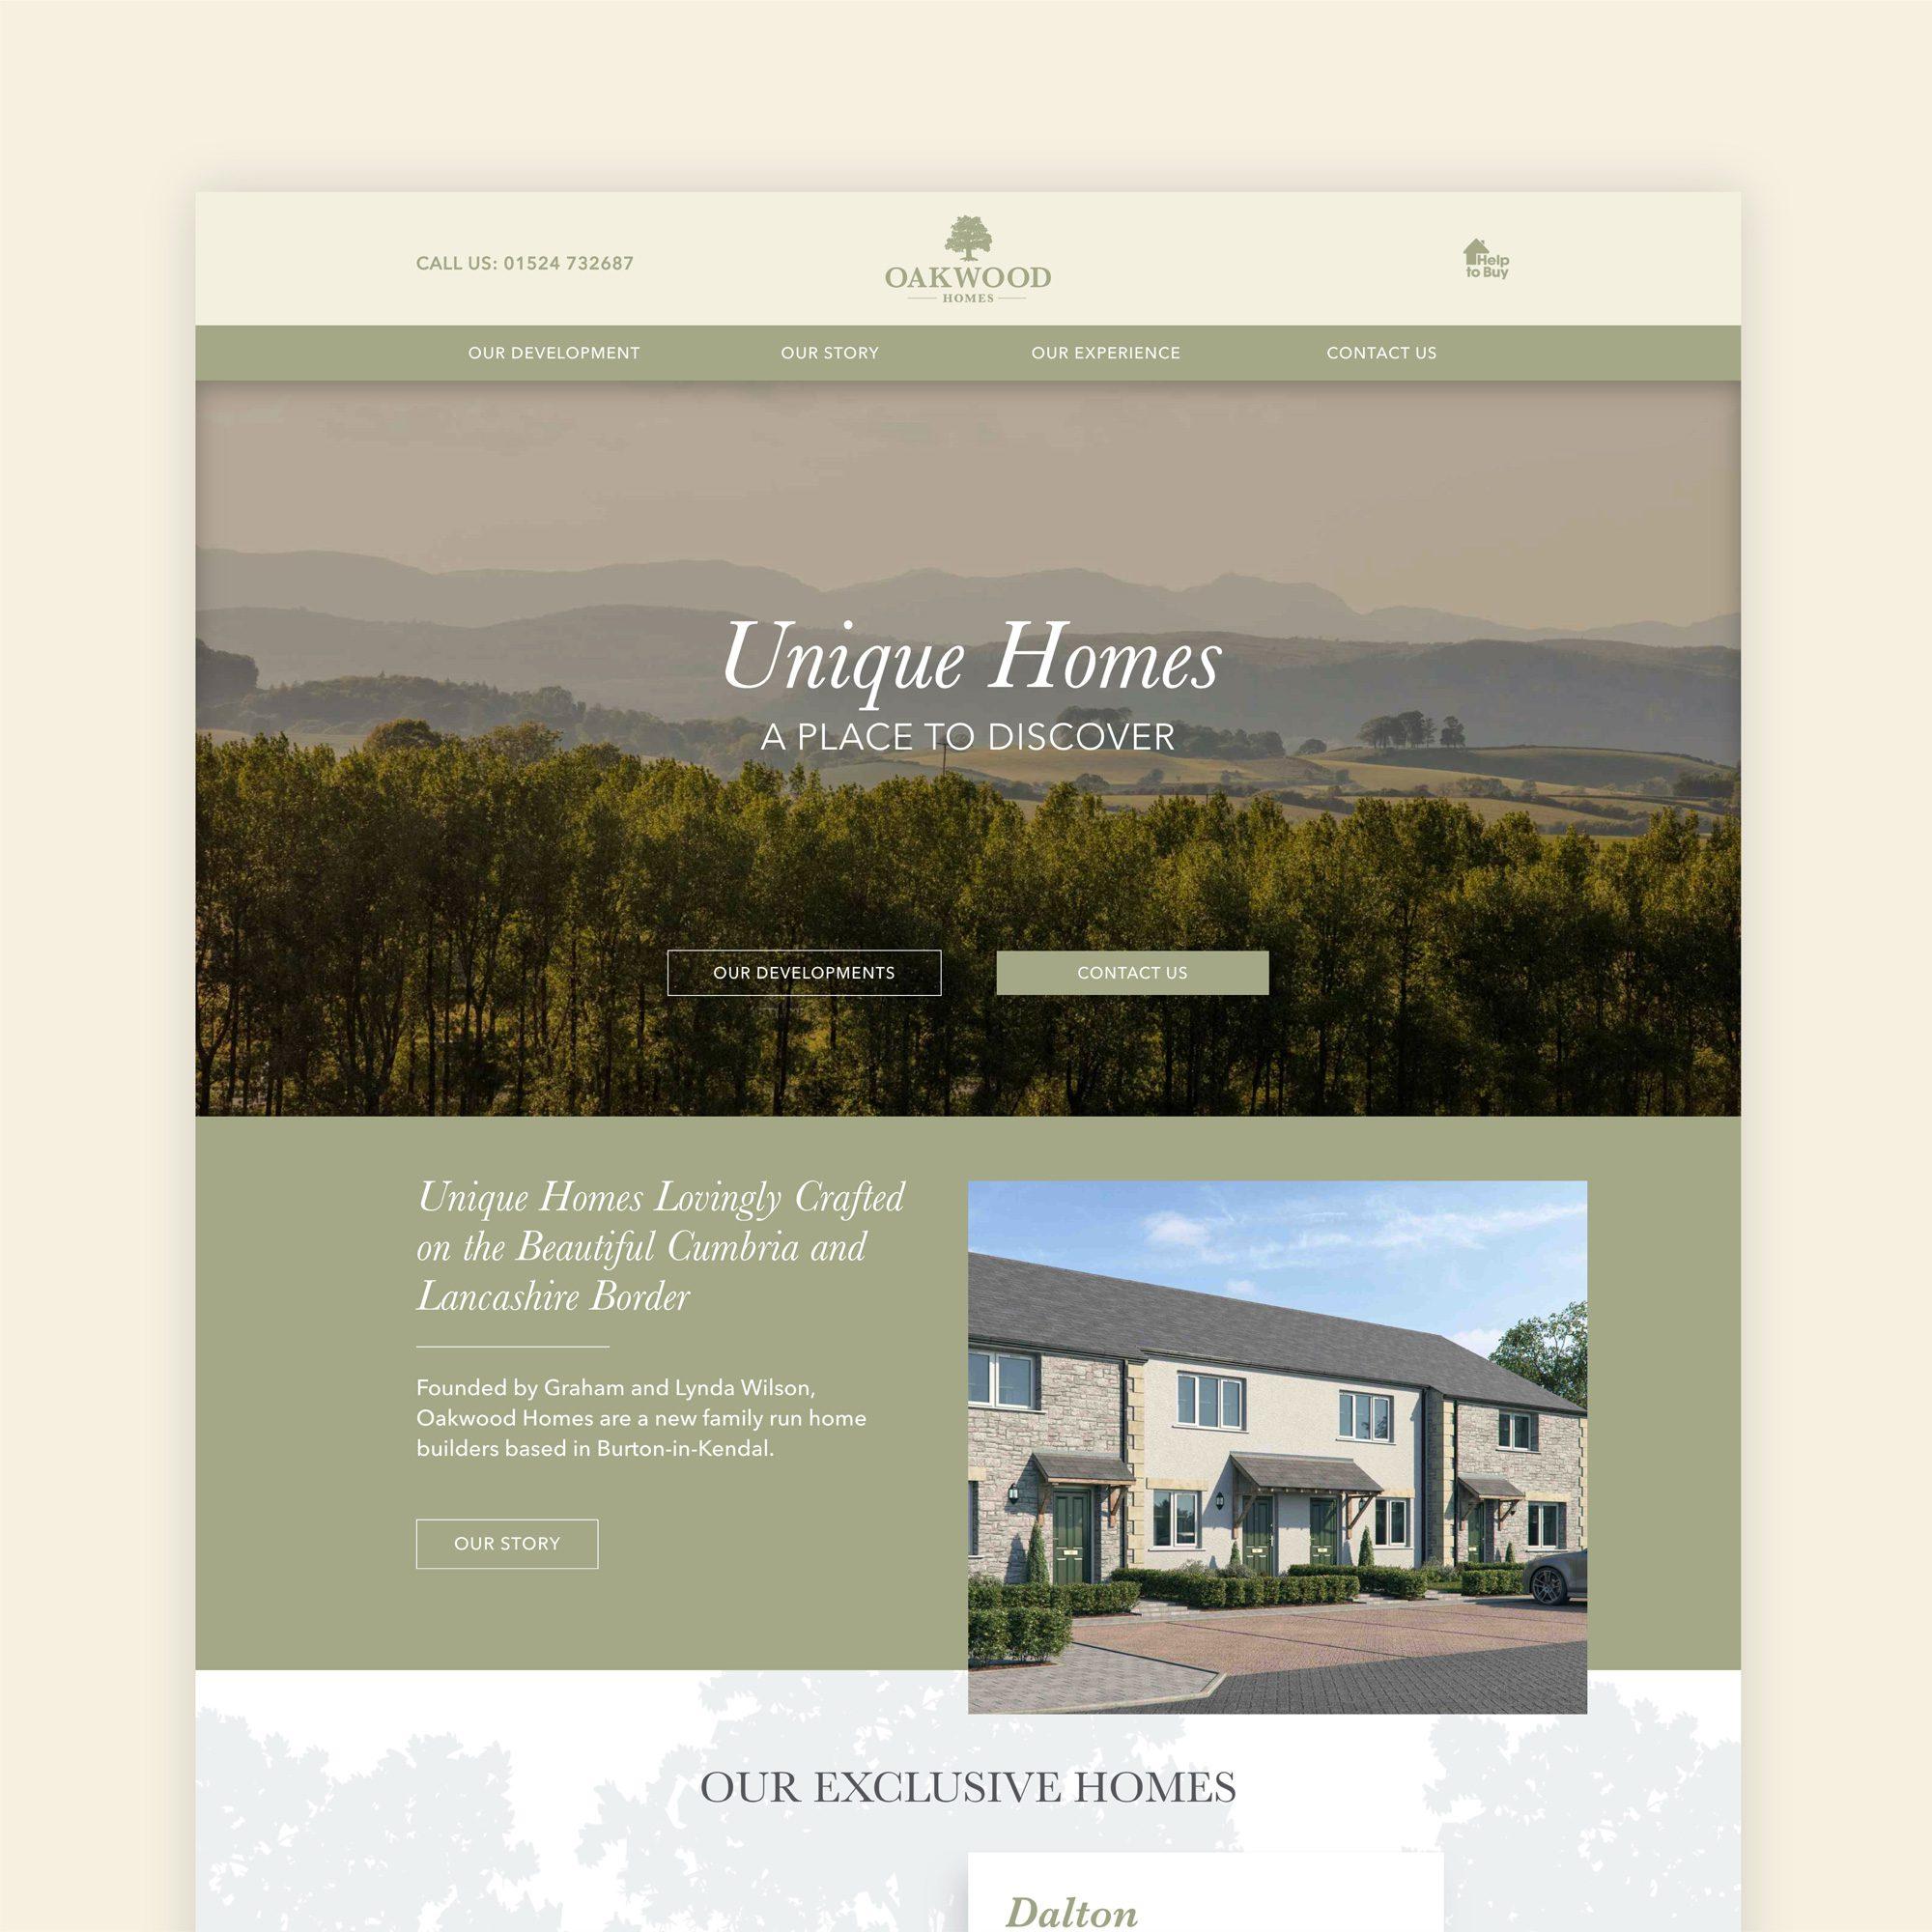 New brand identity and website design for Oakwood Homes in Lancashire